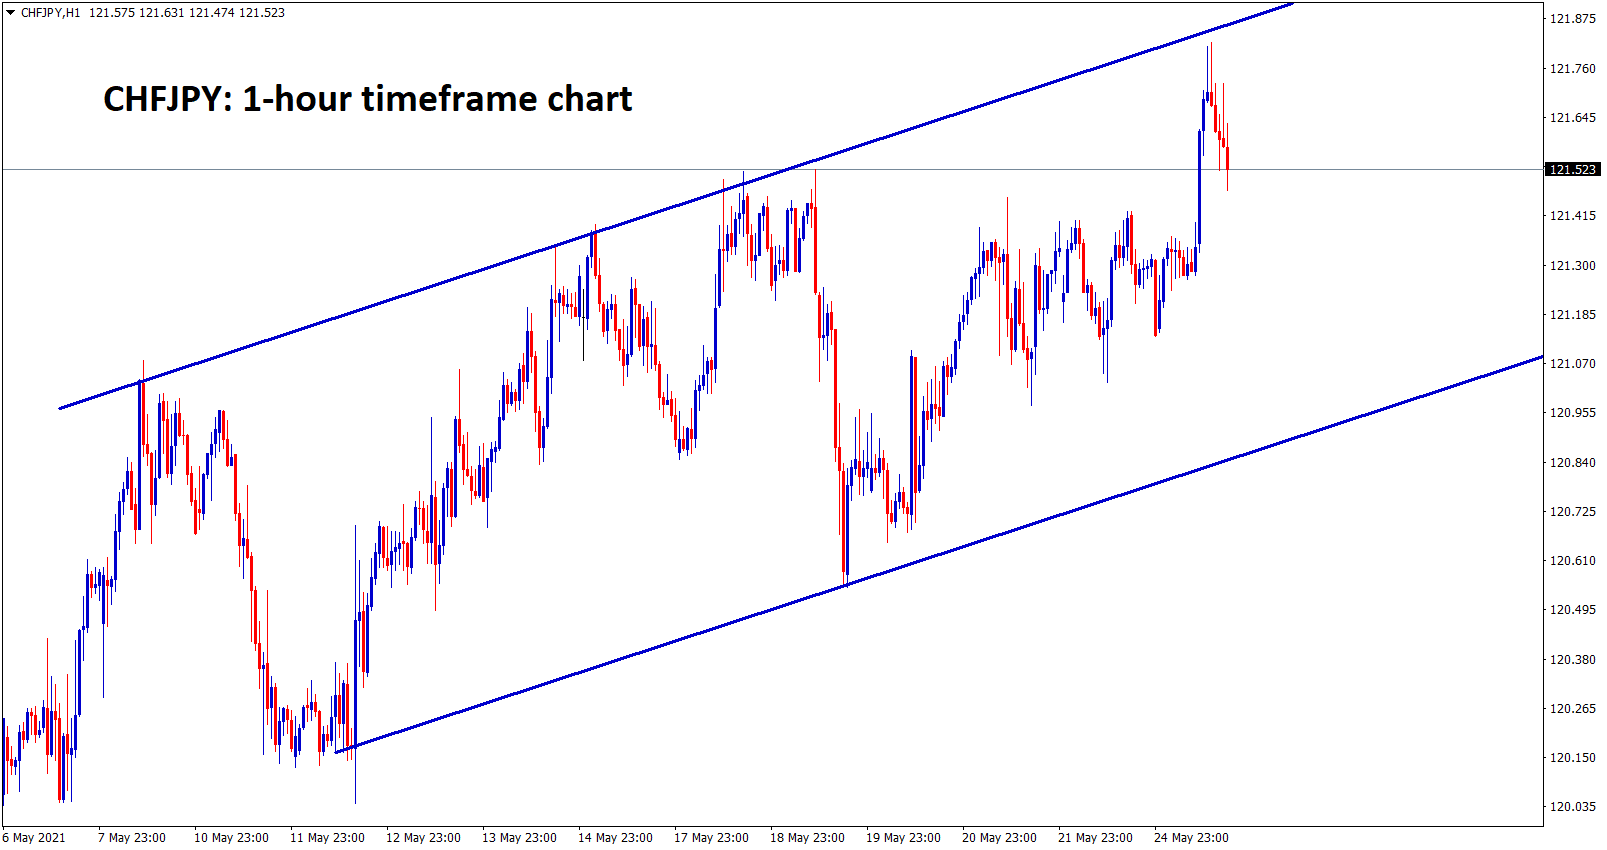 CHFJPY is moving in a strong uptrend forming an Ascending Channel